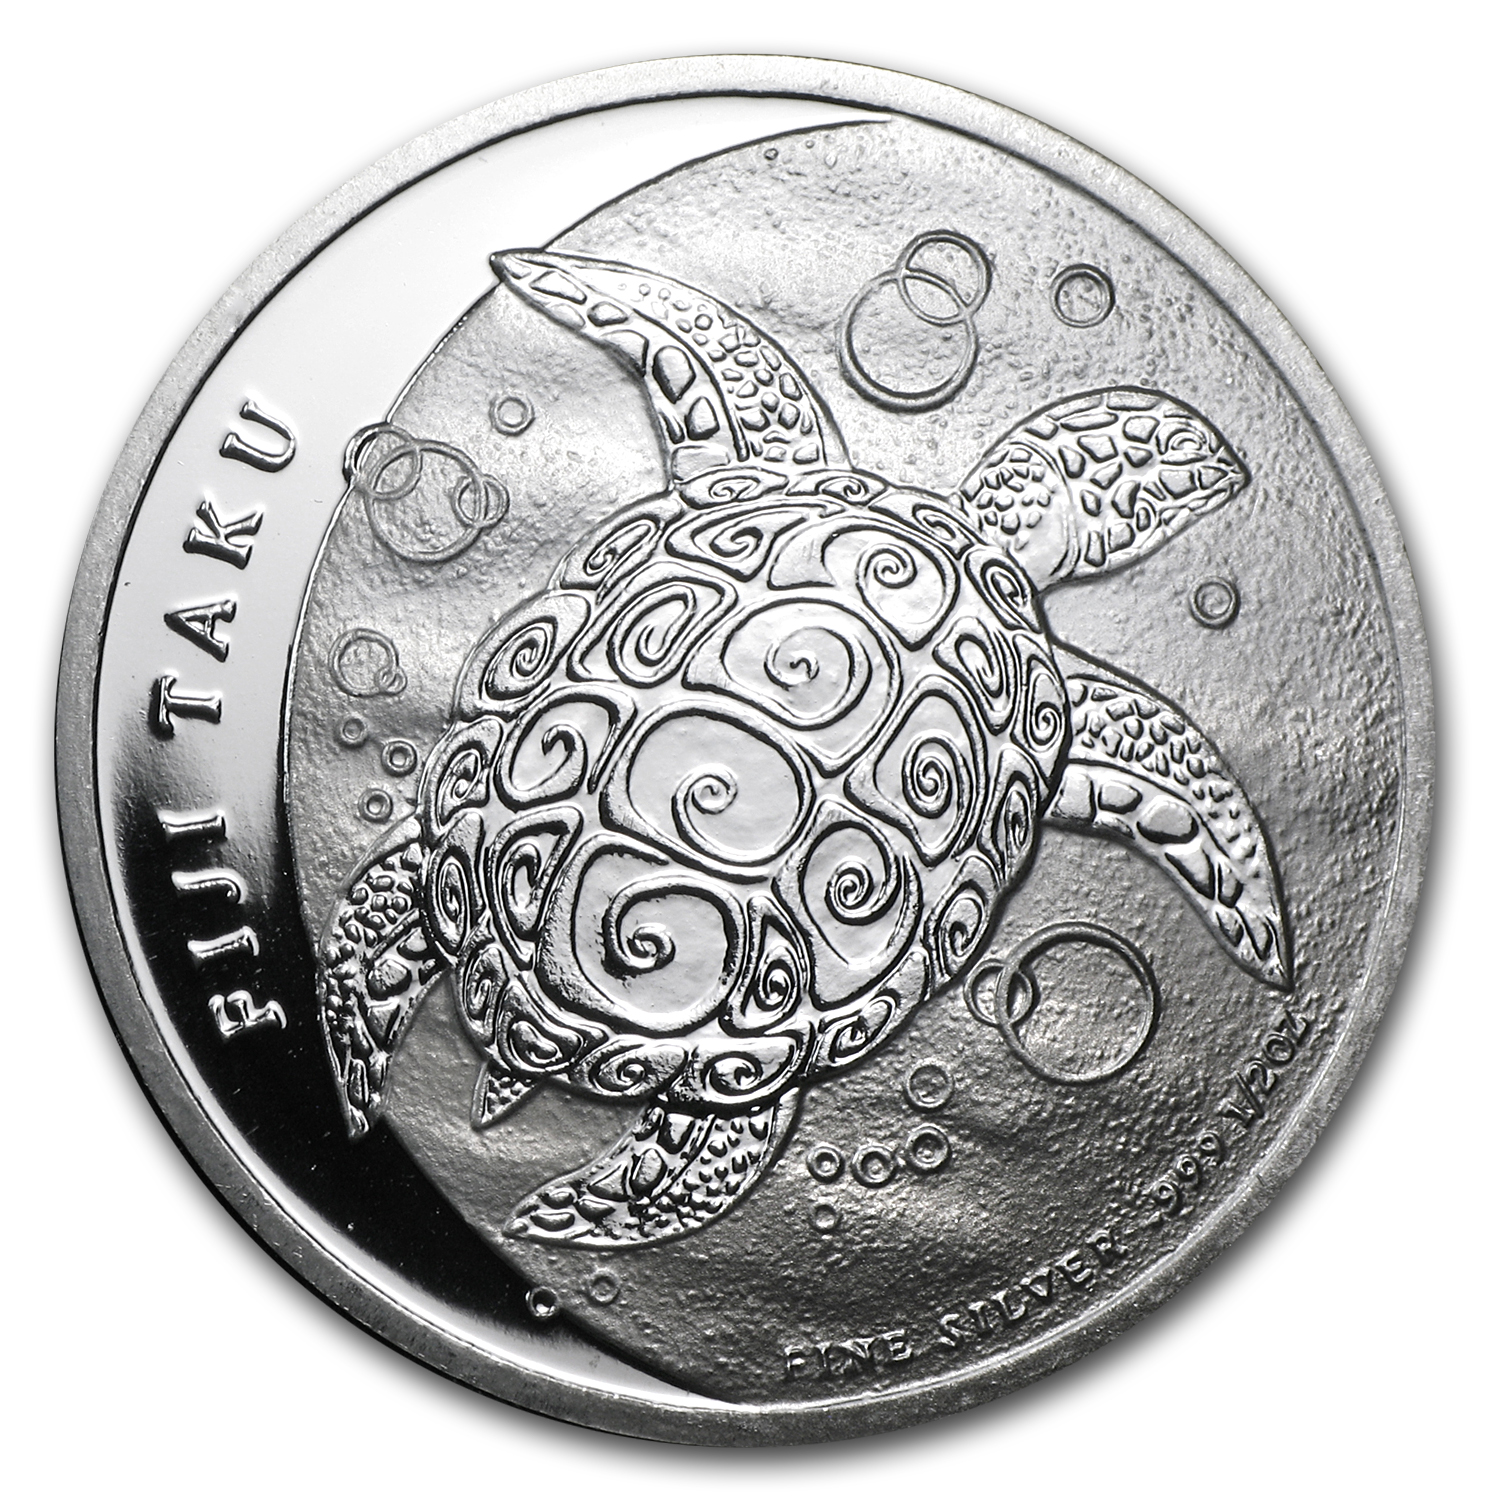 2012 1/2 oz Silver New Zealand Mint $1 Fiji Taku .999